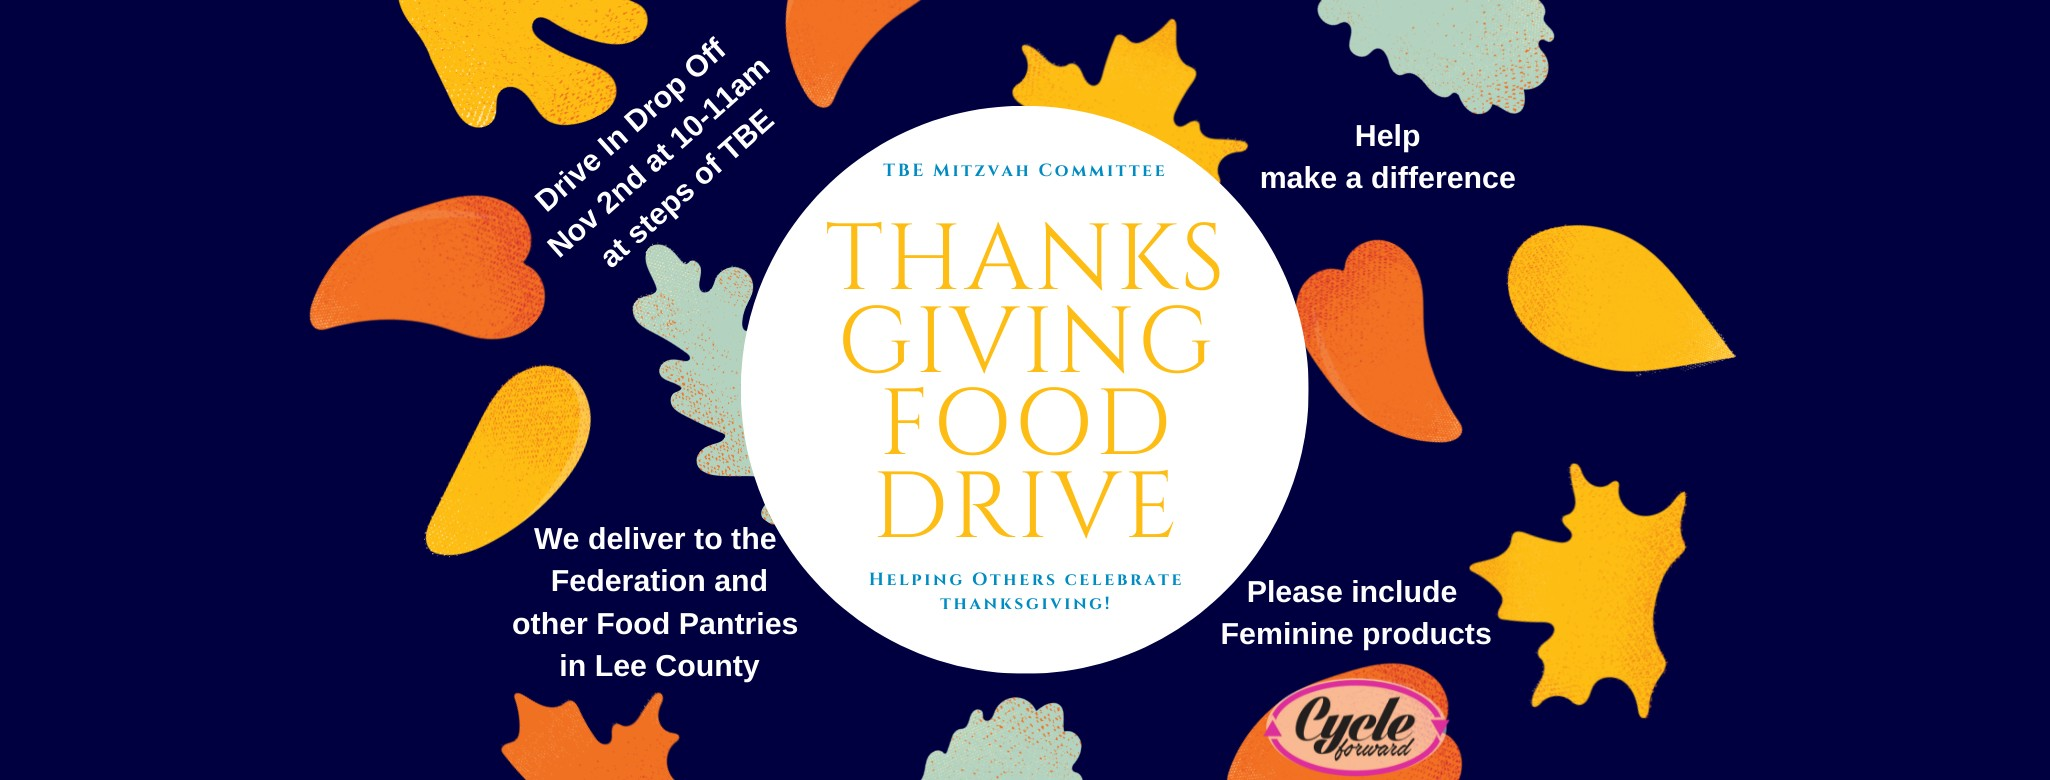 """<a href=""""https://www.templebethel.com/event/drive-in-drop-off-food-drive-and-cycle-forward-donations11.html""""                                     target="""""""">                                                                 <span class=""""slider_title"""">                                     November 2nd                                </span>                                                                 </a>                                                                                                                                                                                      <a href=""""https://www.templebethel.com/event/drive-in-drop-off-food-drive-and-cycle-forward-donations11.html"""" class=""""slider_link""""                             target="""""""">                             More Information                            </a>"""